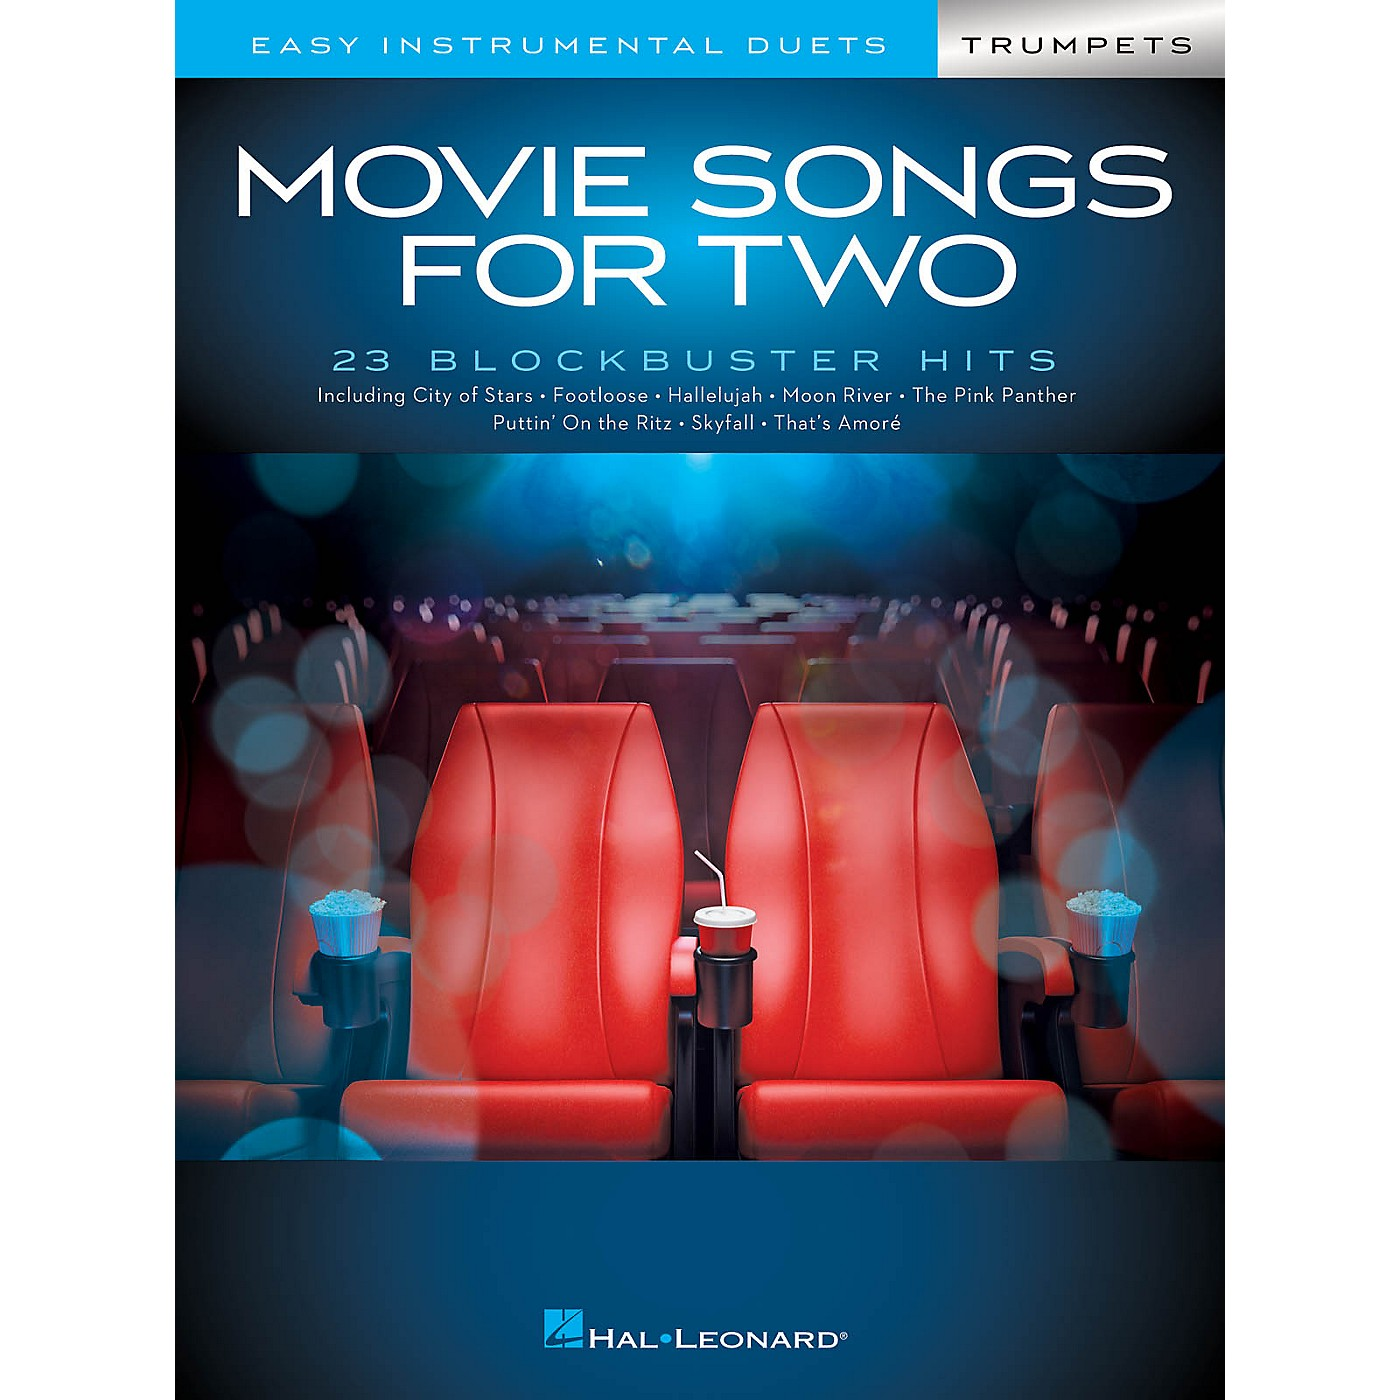 Hal Leonard Movie Songs for Two Trumpets - Easy Instrumental Duets thumbnail